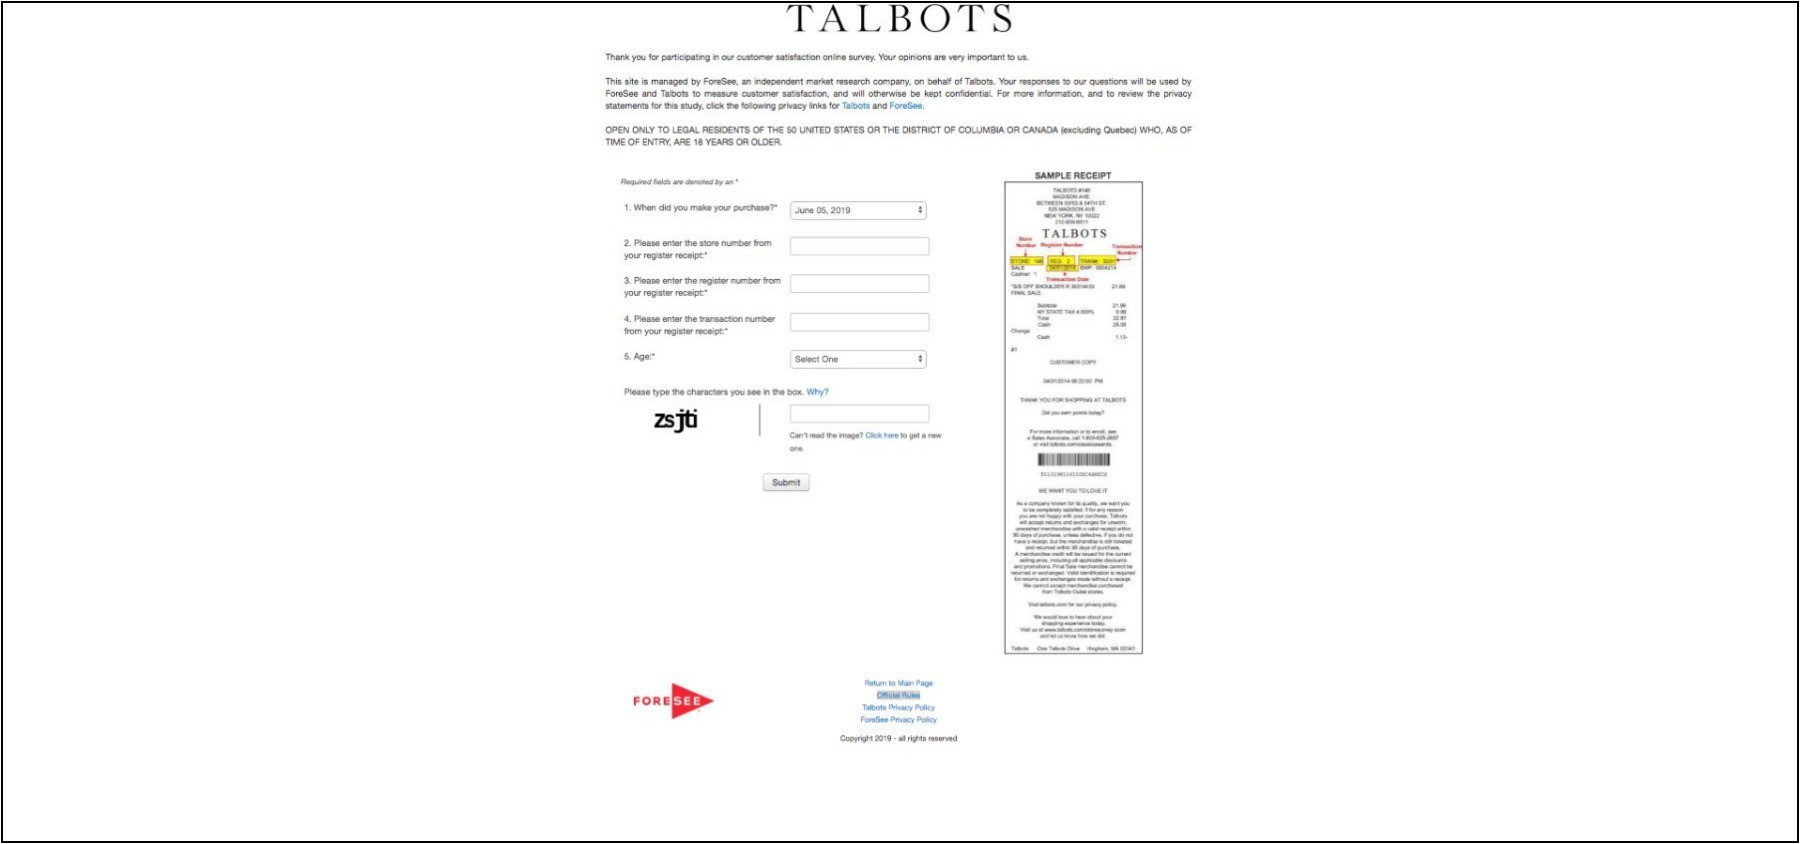 Survey.ForeSeeresults.com/Talbots